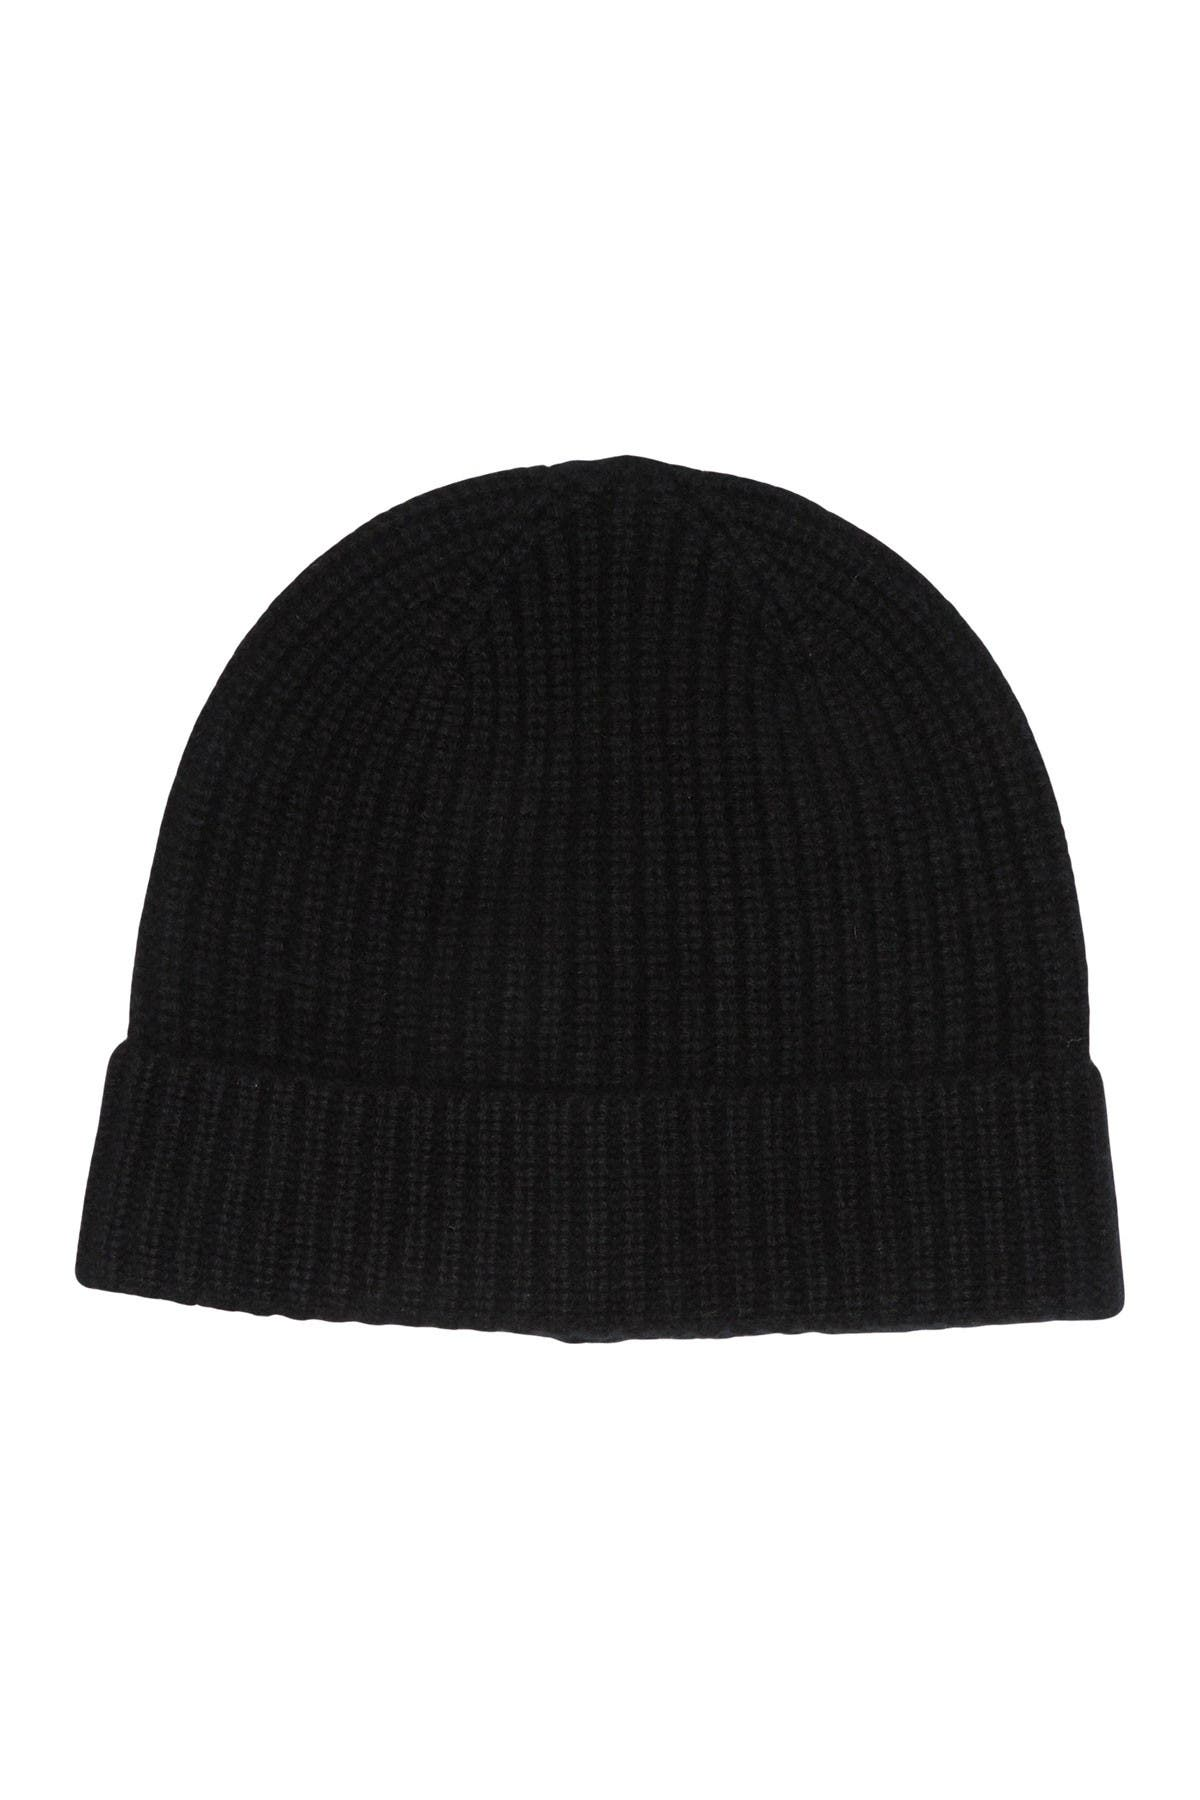 Image of Hickey Freeman Cashmere Ribbed Cuff Beanie